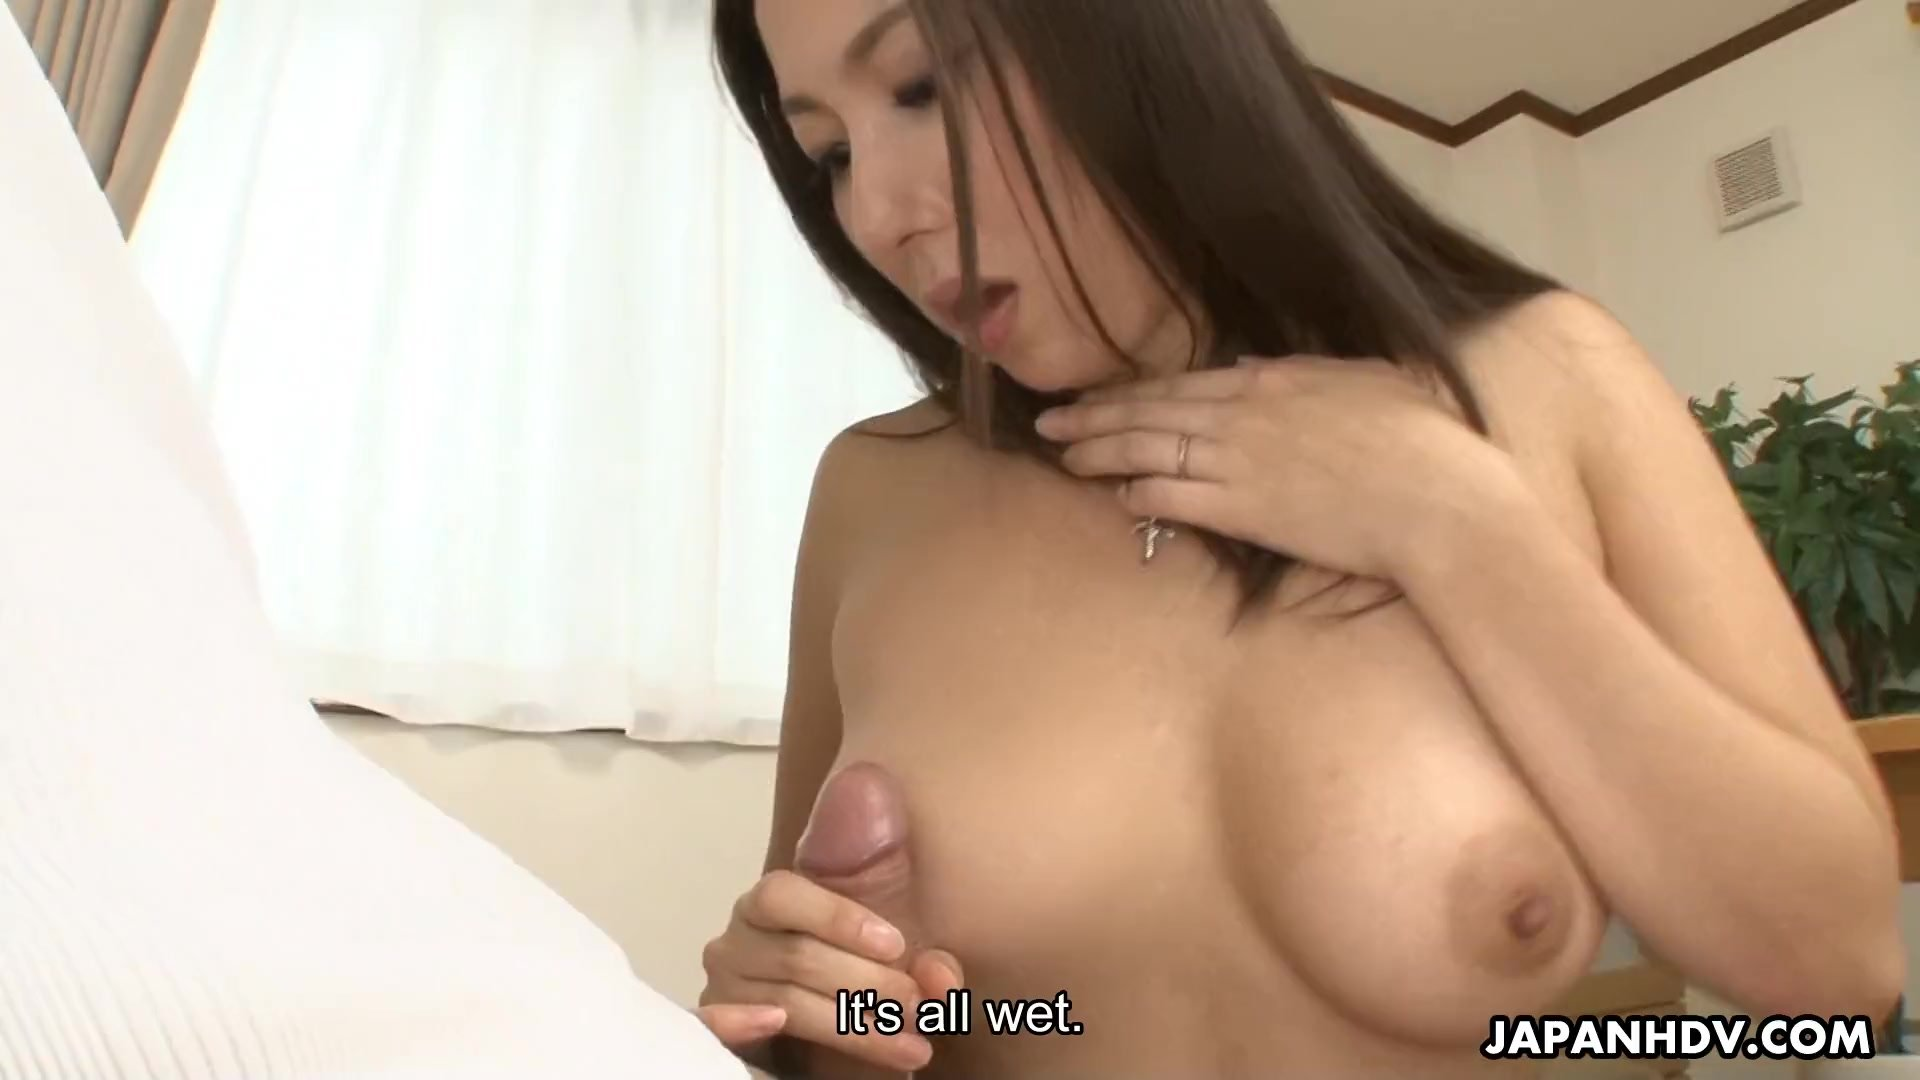 Sucking her meaty pussy then she returns the favor